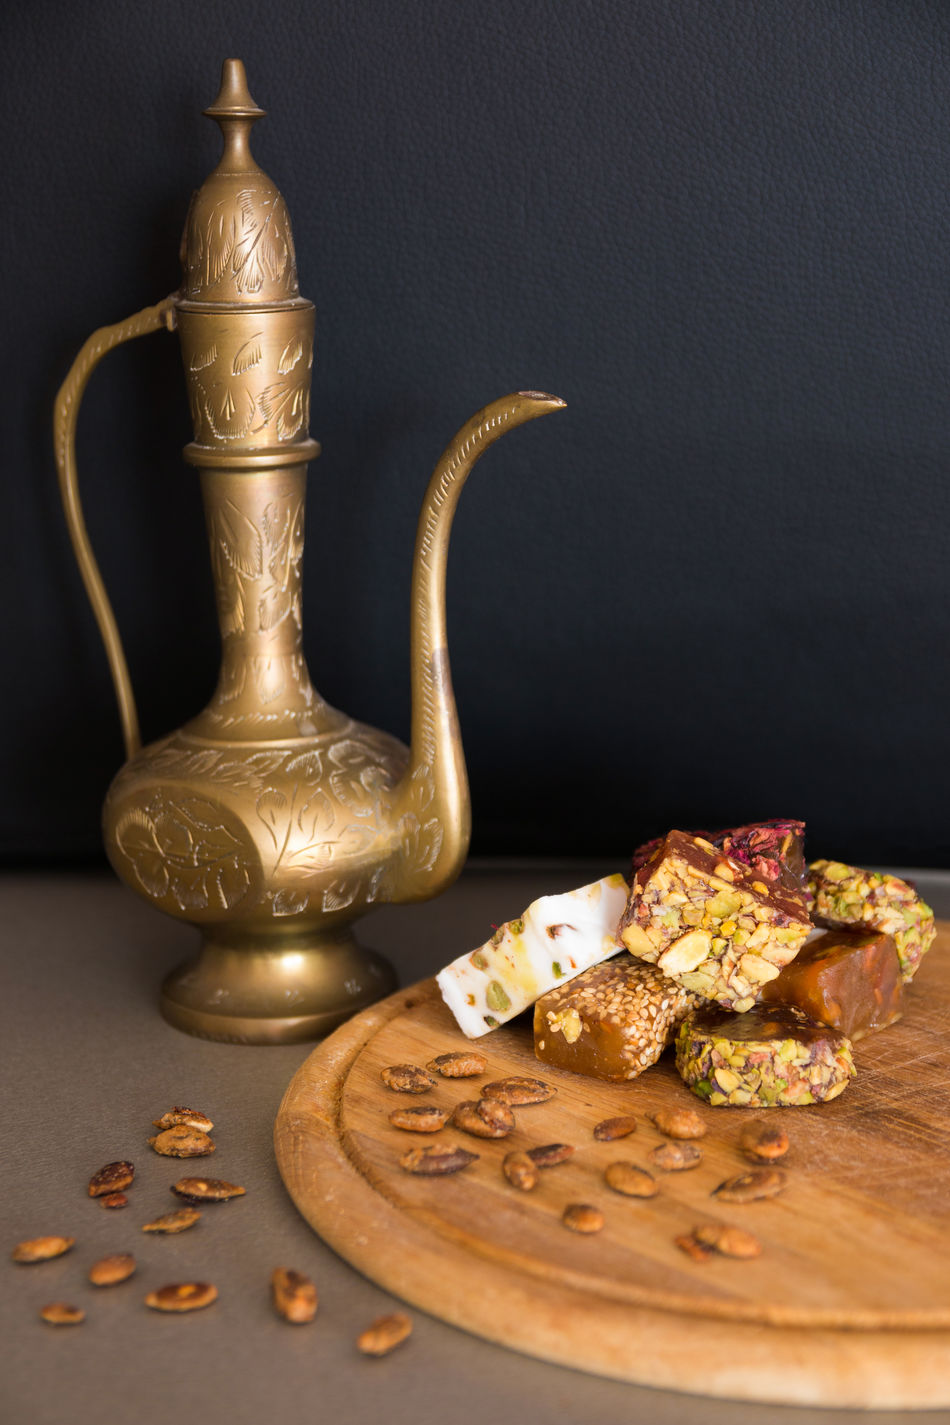 Antique Close-up Food Food And Drink Gold Gold Colored Indoors  Jug No People Sweet Tea Turkish Delight Turkish Sweets